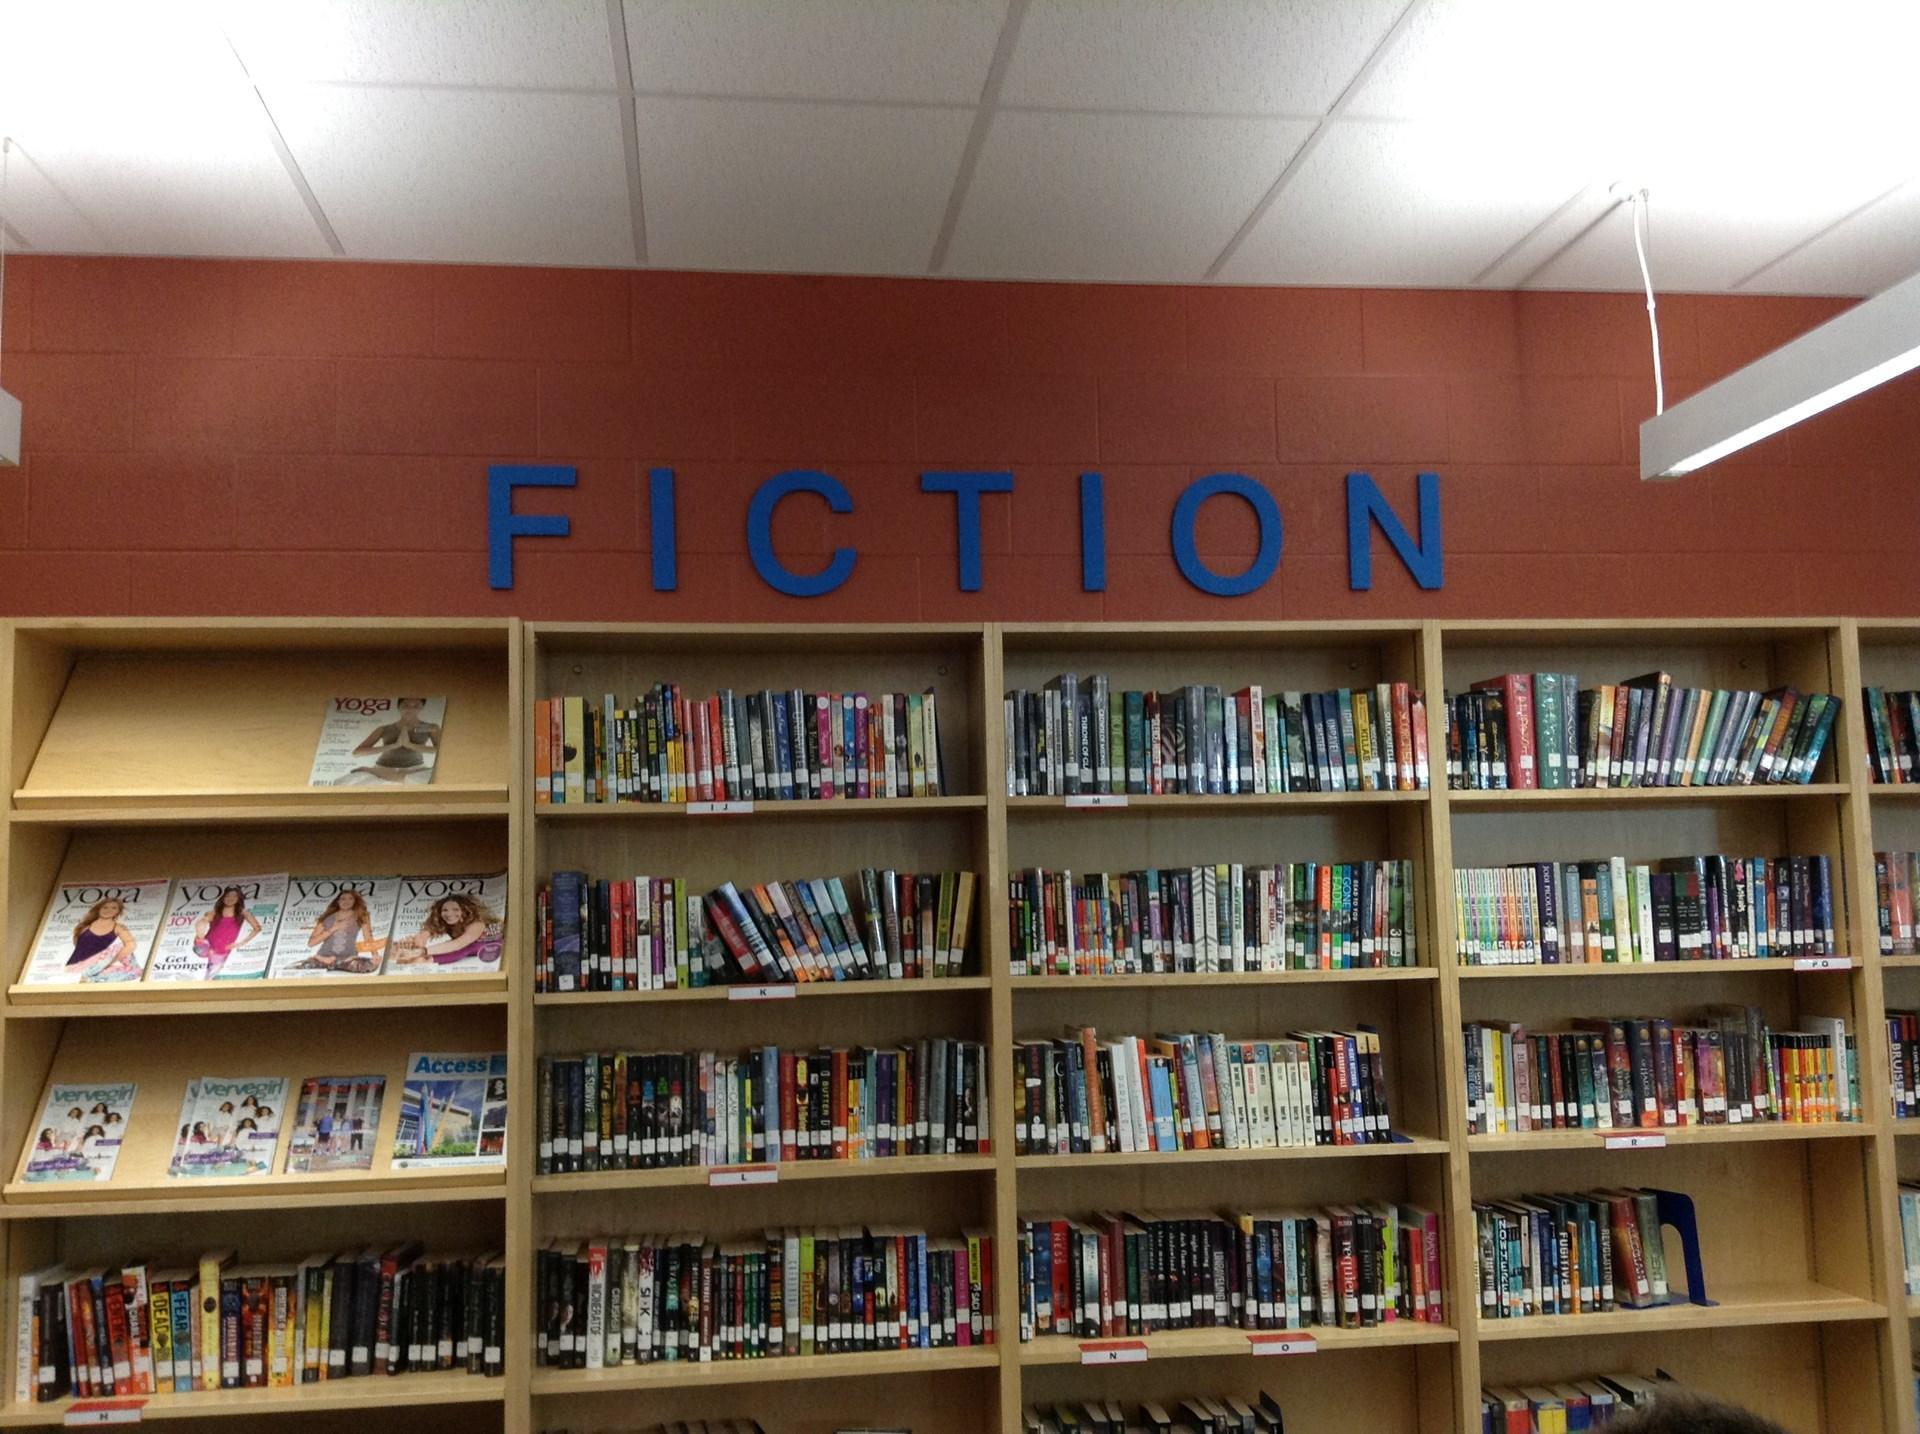 Fiction book shelf